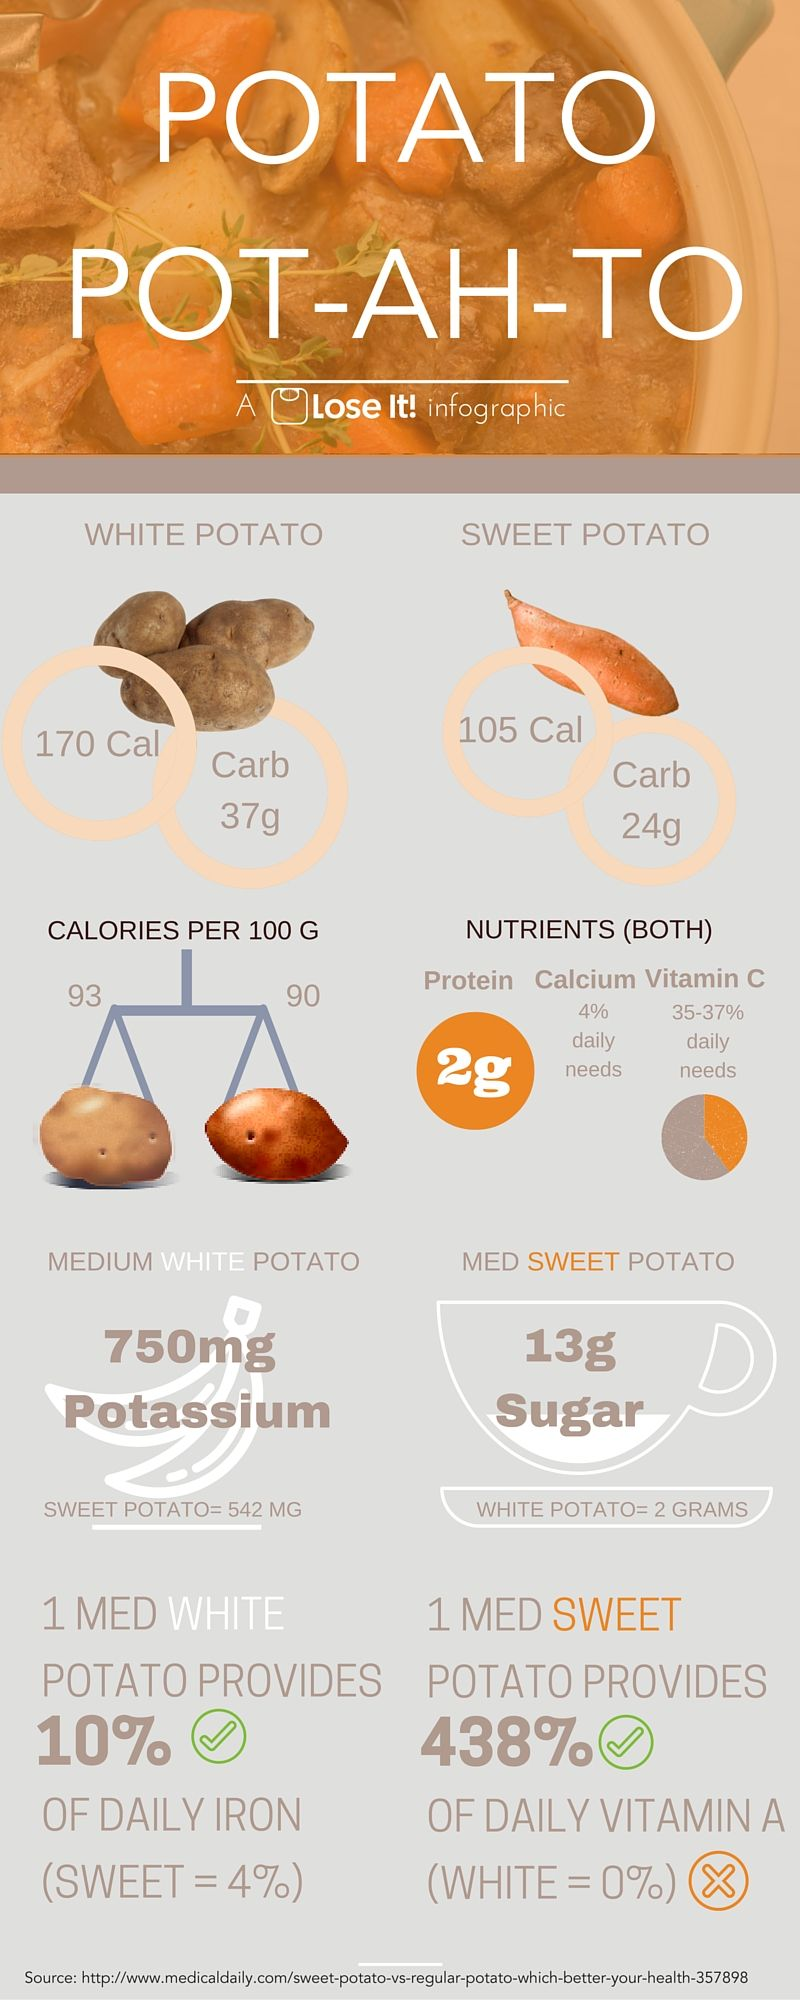 Which Is Better for You? White Potato vs Sweet Potato